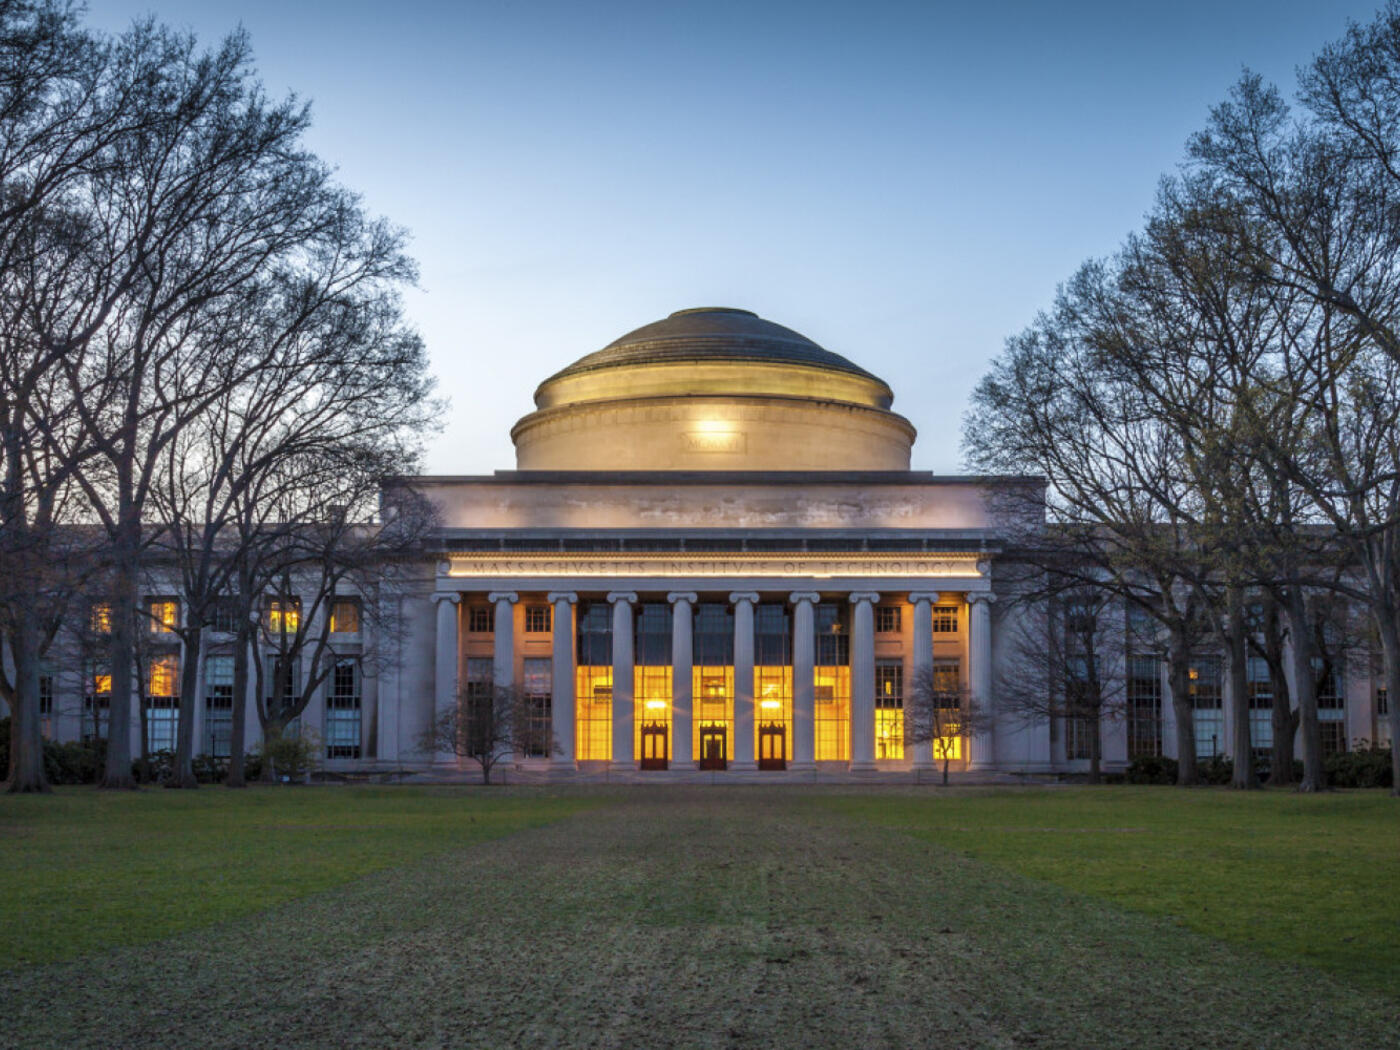 MIT Student Support Services